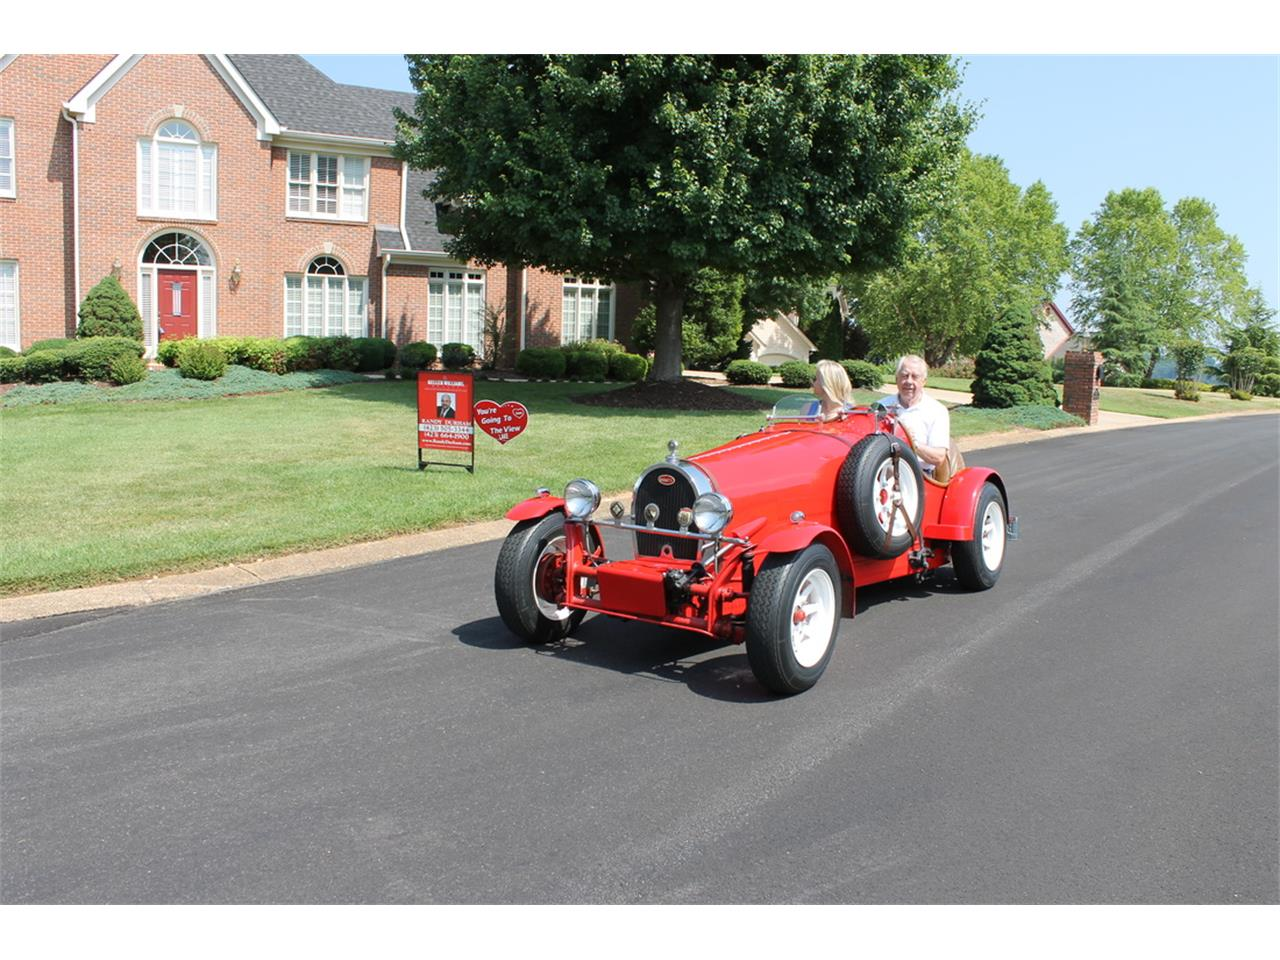 Large Picture of Classic 1927 Bugatti Replica located in Tennessee - $24,900.00 Offered by a Private Seller - MEIY